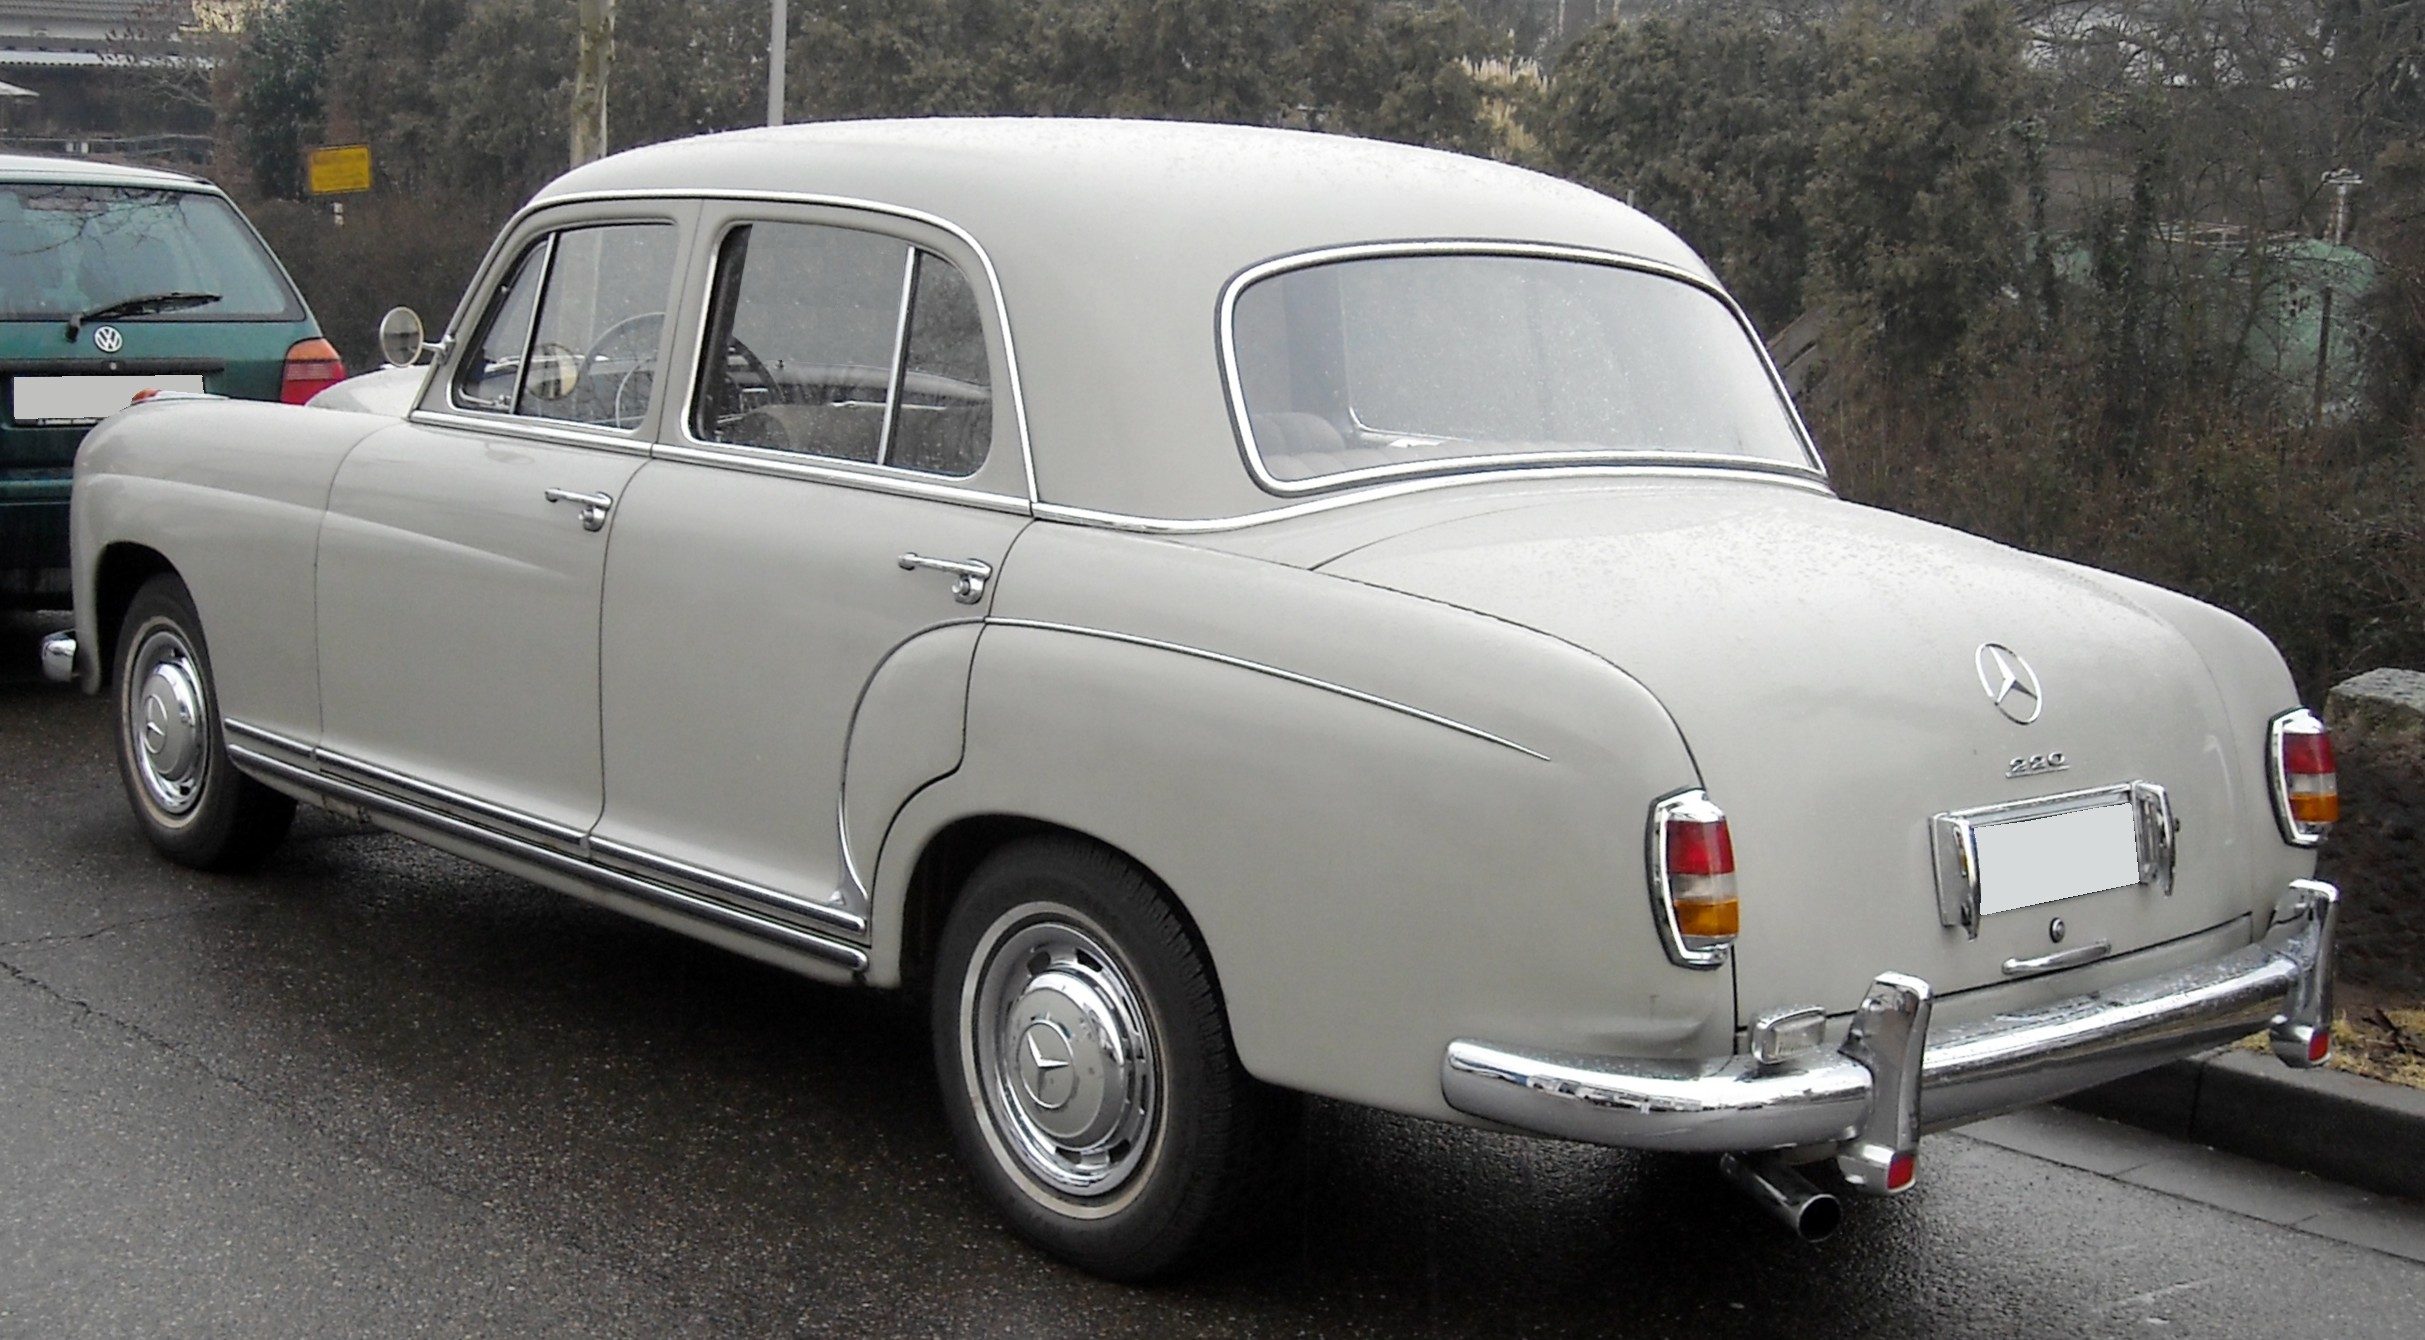 file mercedes benz w121 rear wikimedia commons. Black Bedroom Furniture Sets. Home Design Ideas